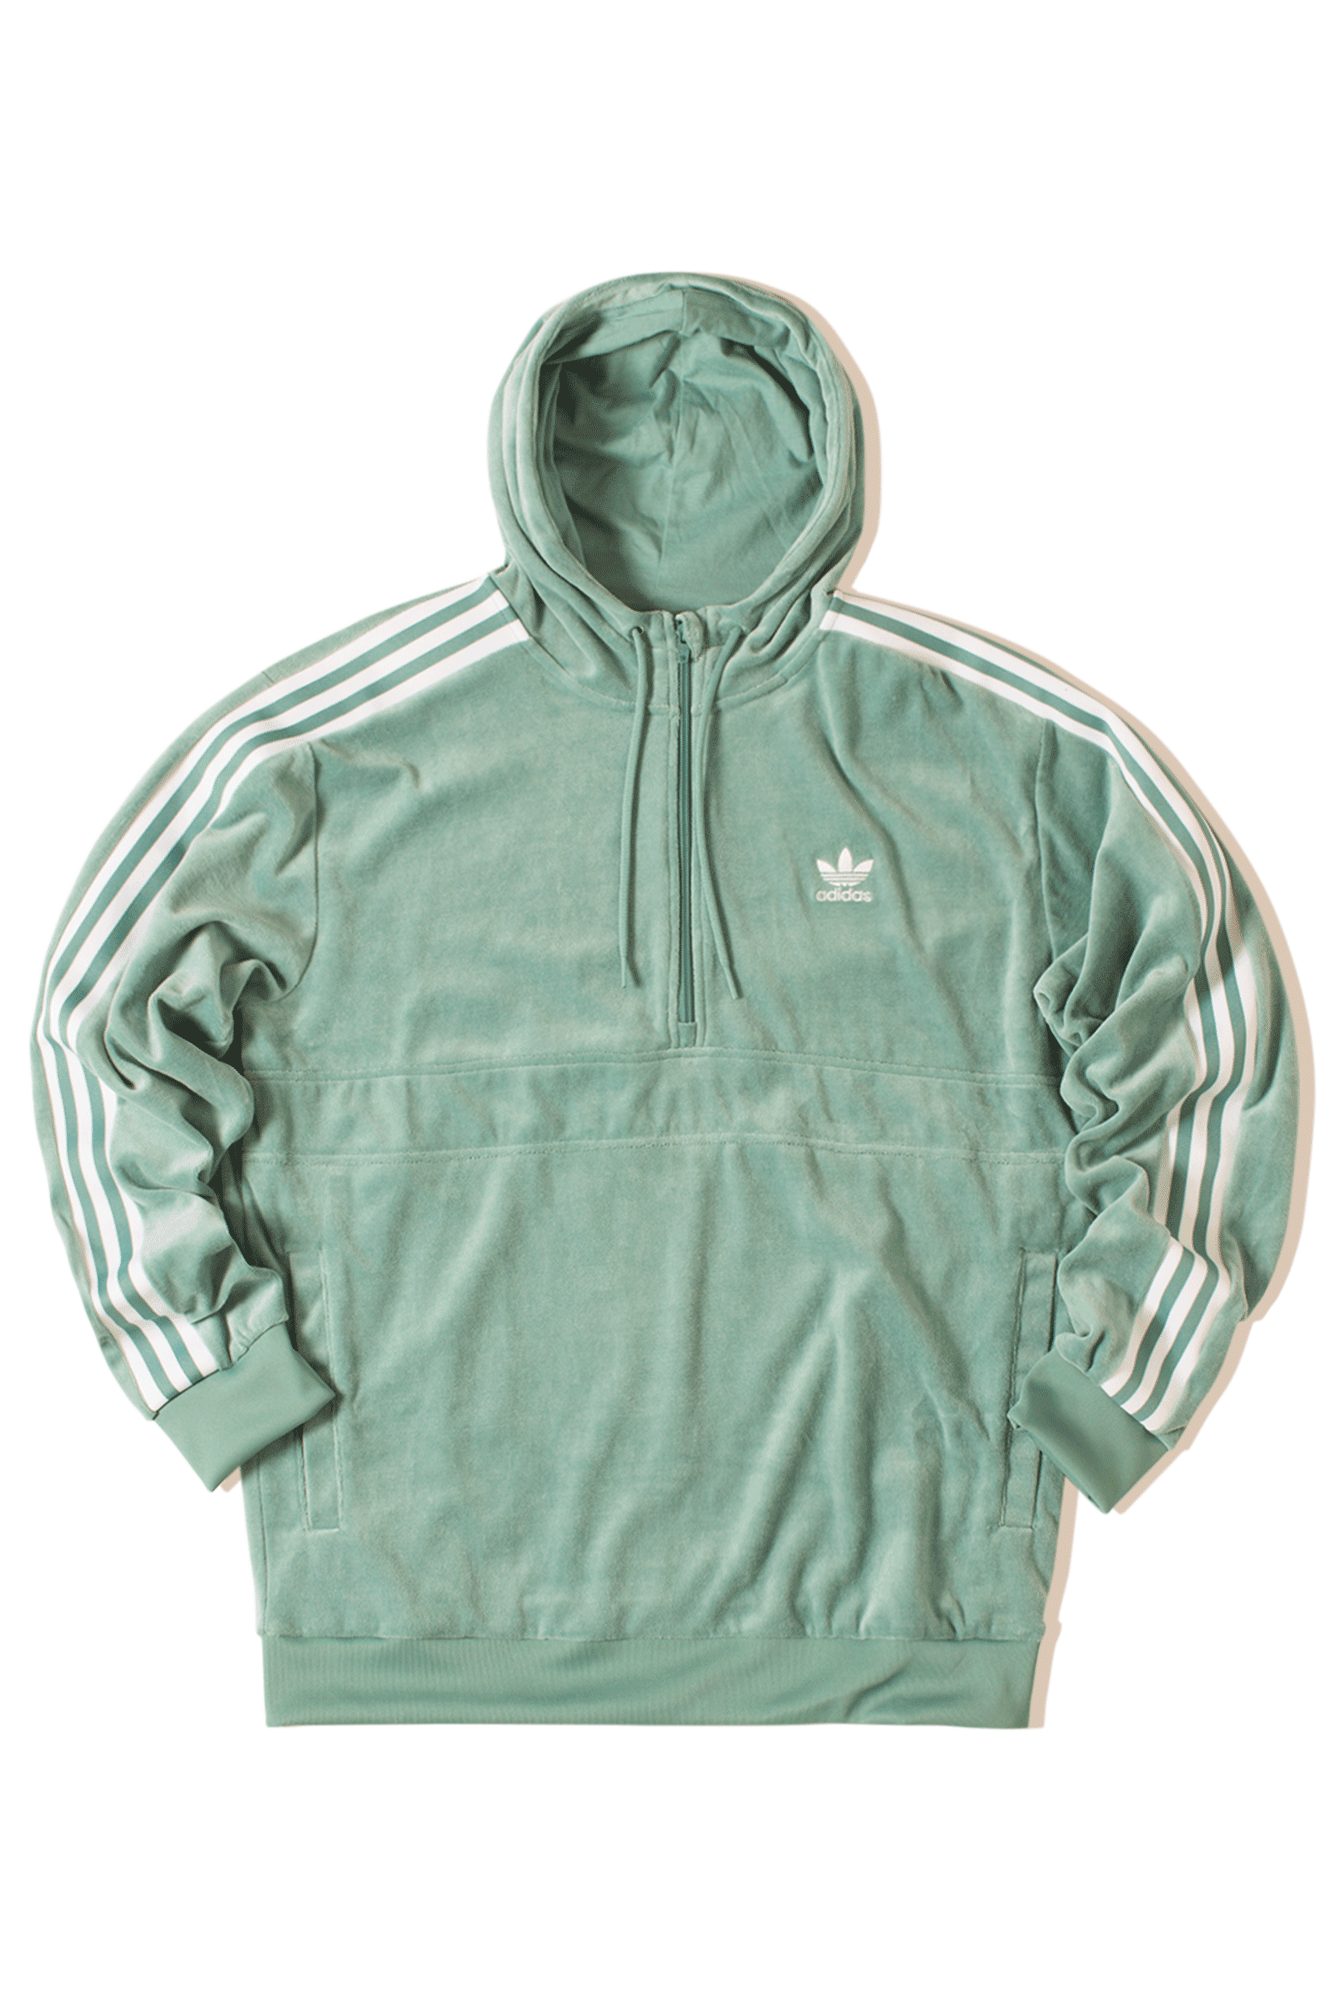 Adidas Originals Sweaters Cozy Halfzip Green DV1624#000#C0013#XS - One Block Down